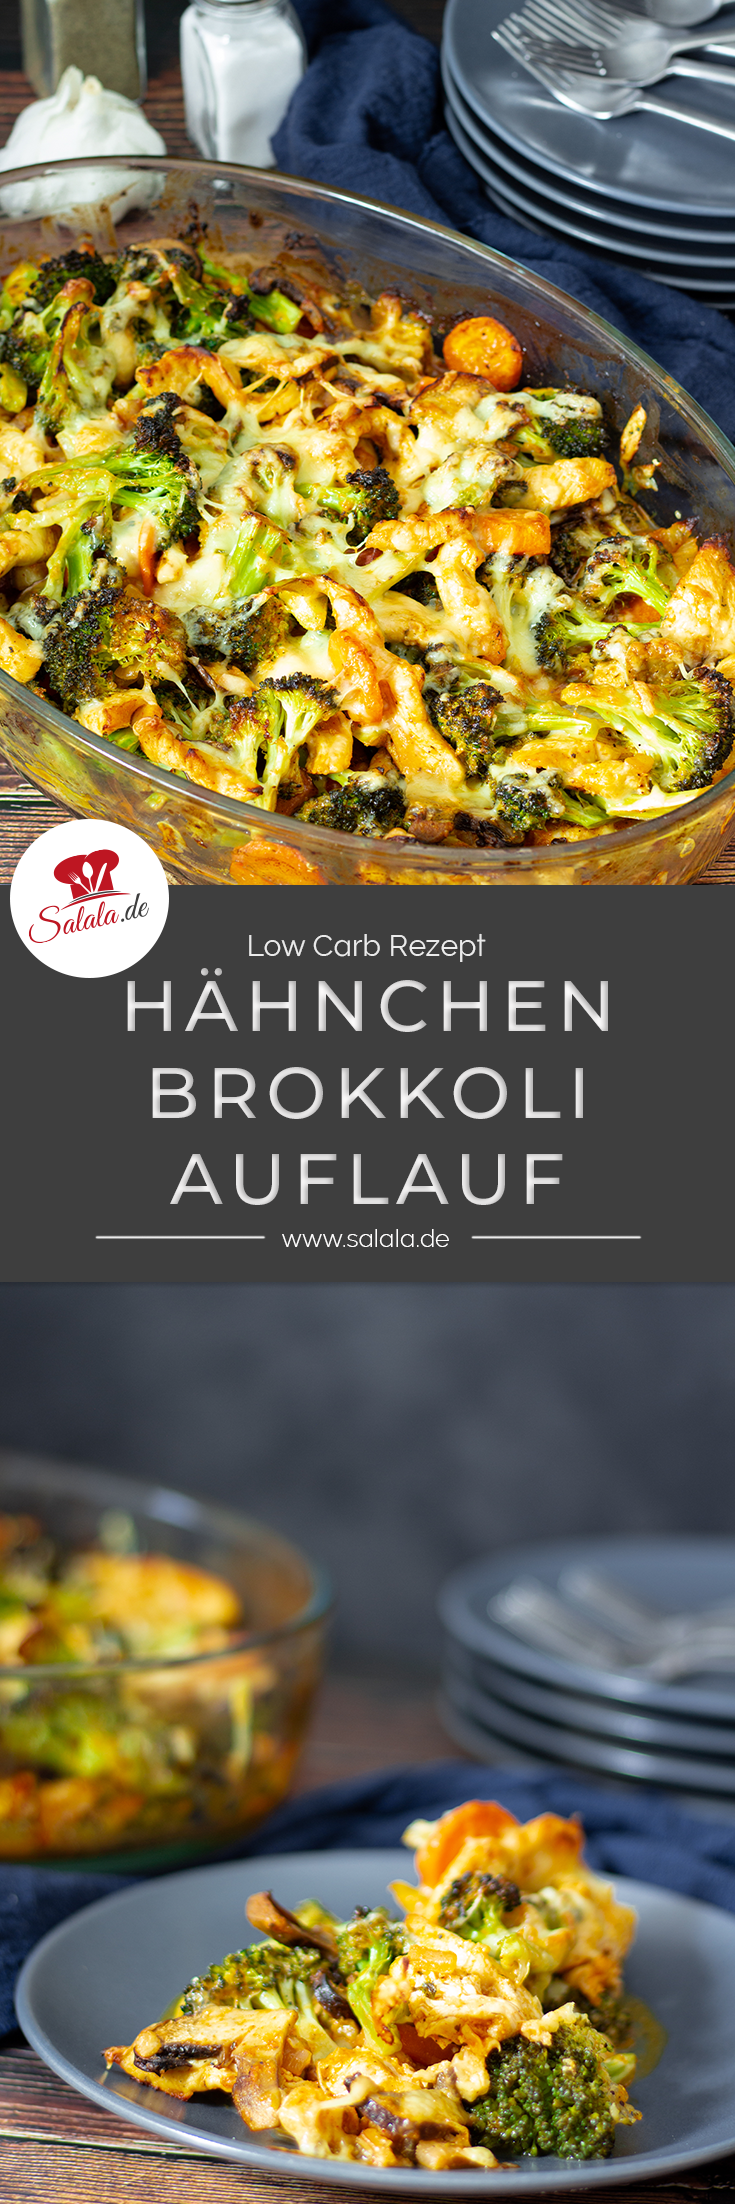 Photo of Chicken and broccoli bake with mushrooms and gouda | salala.de – Low carb made easy